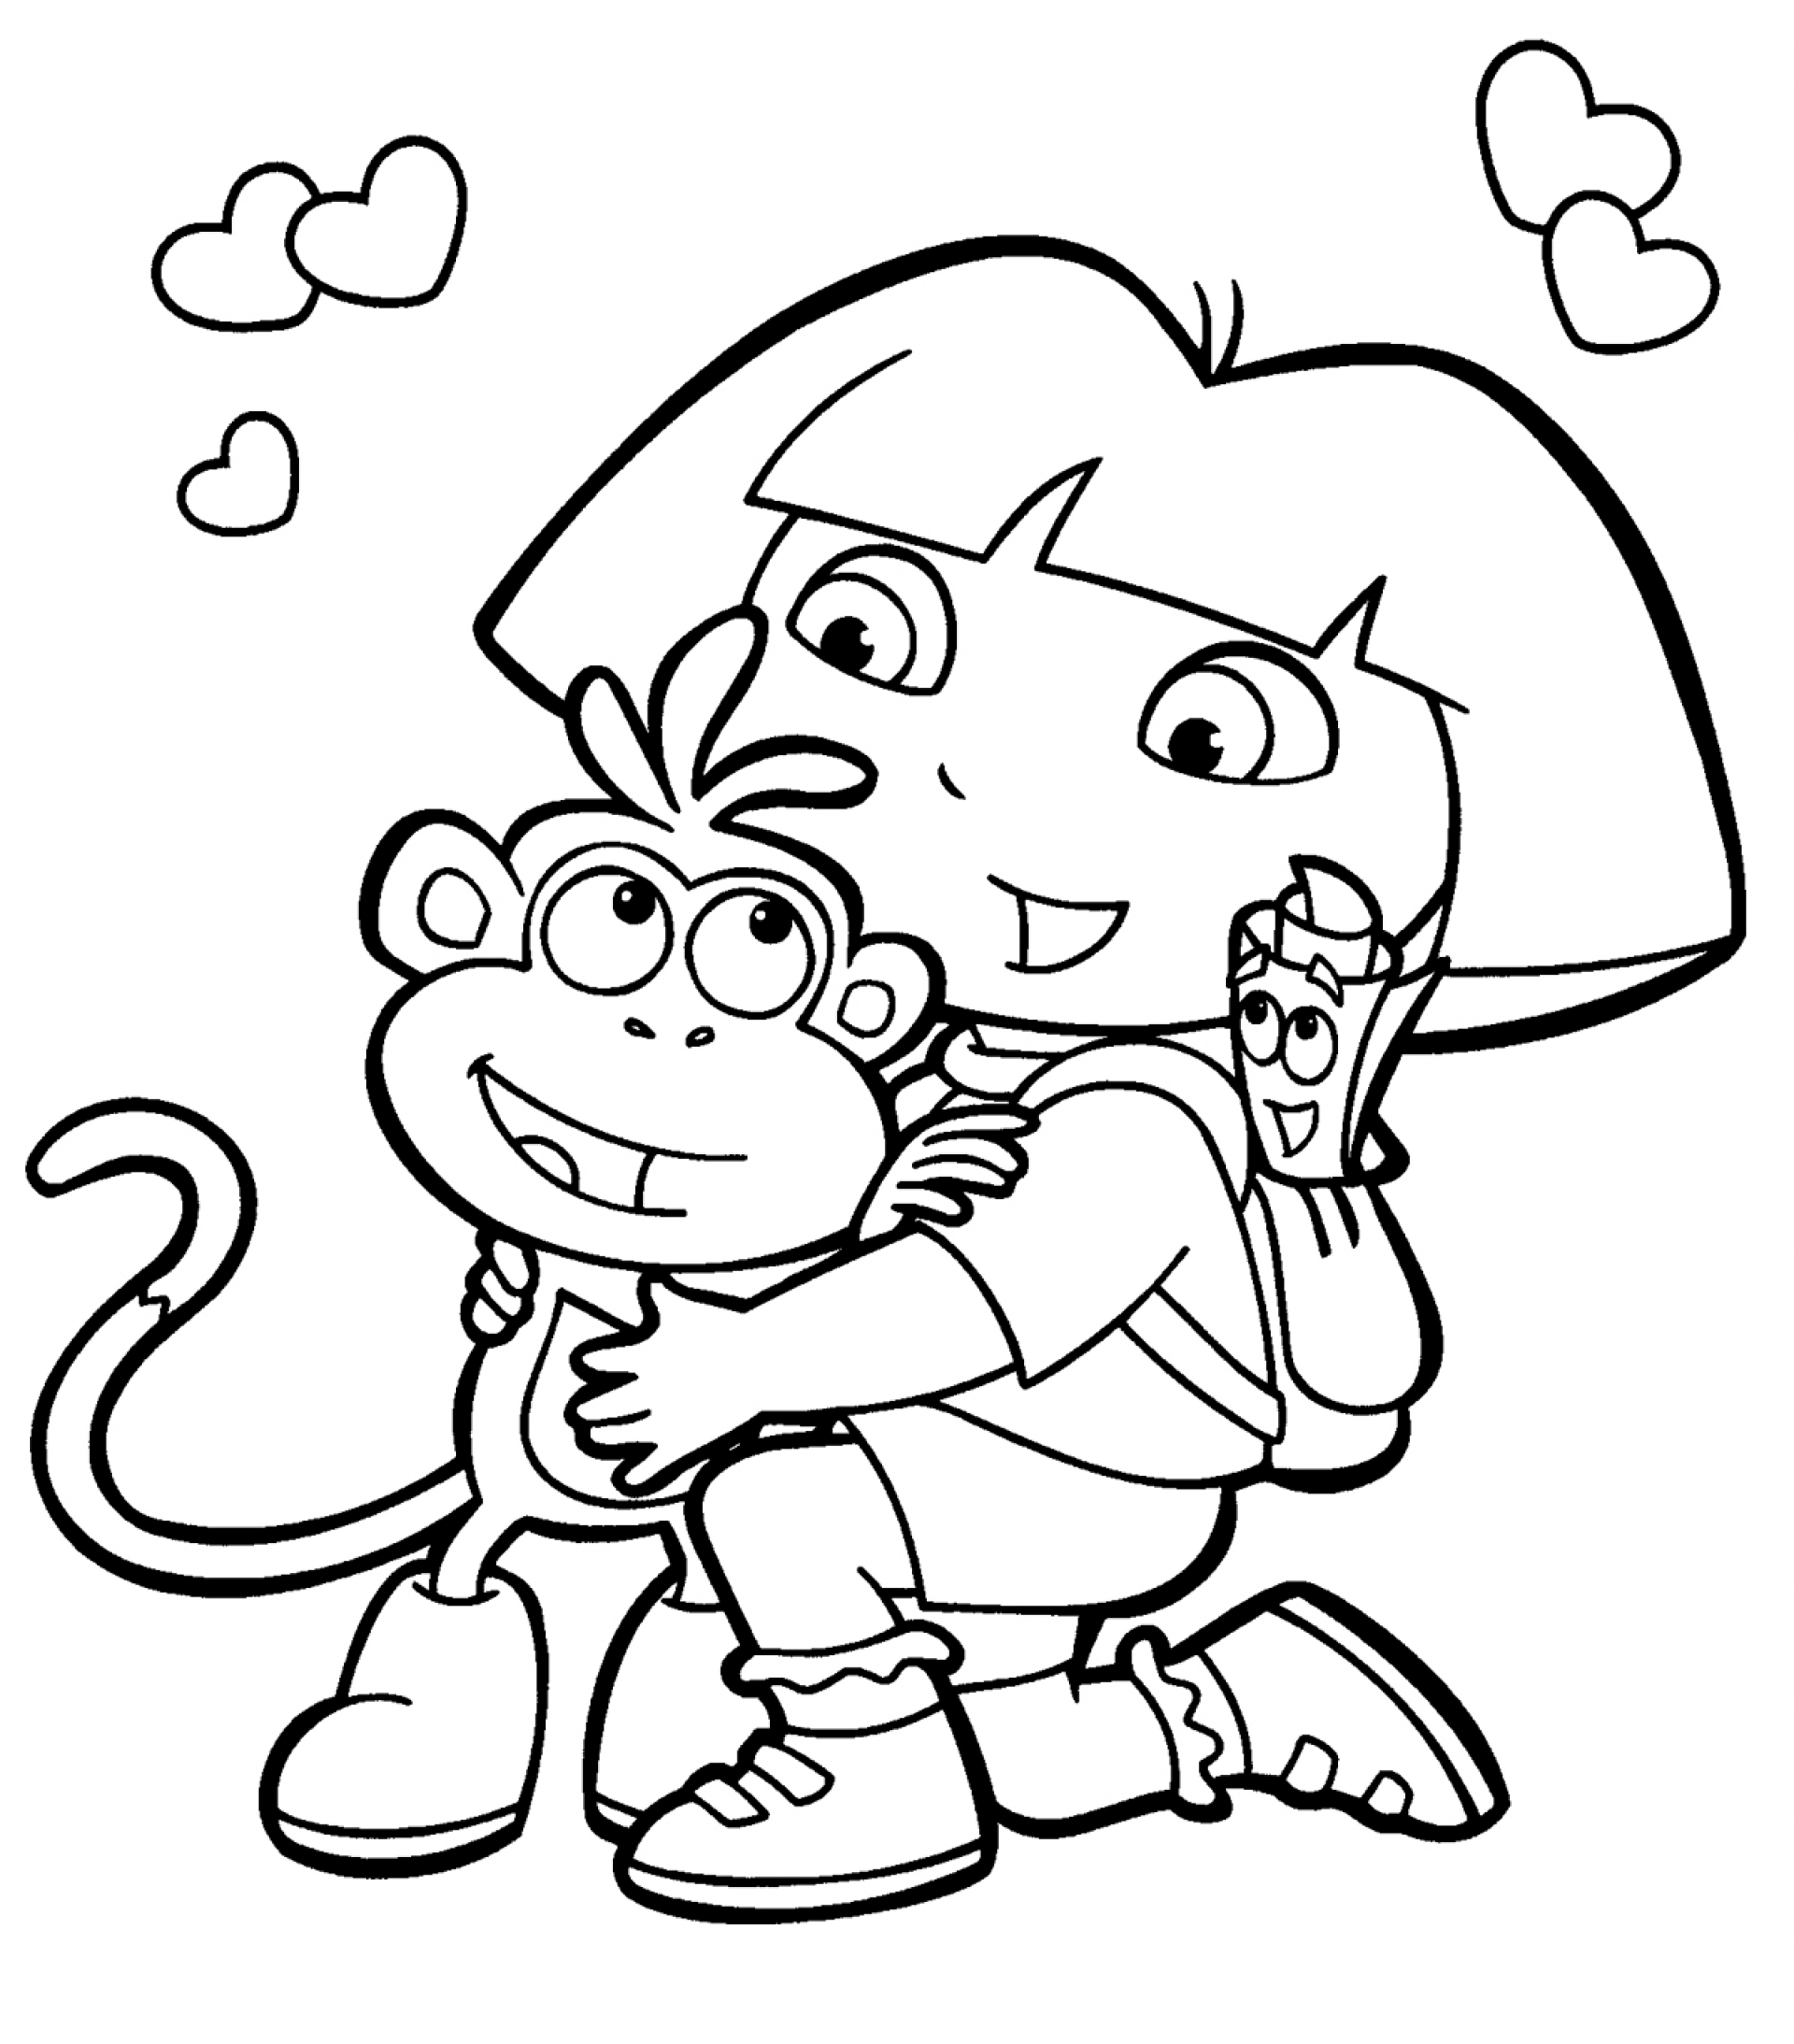 free download dora coloring pages - photo#3